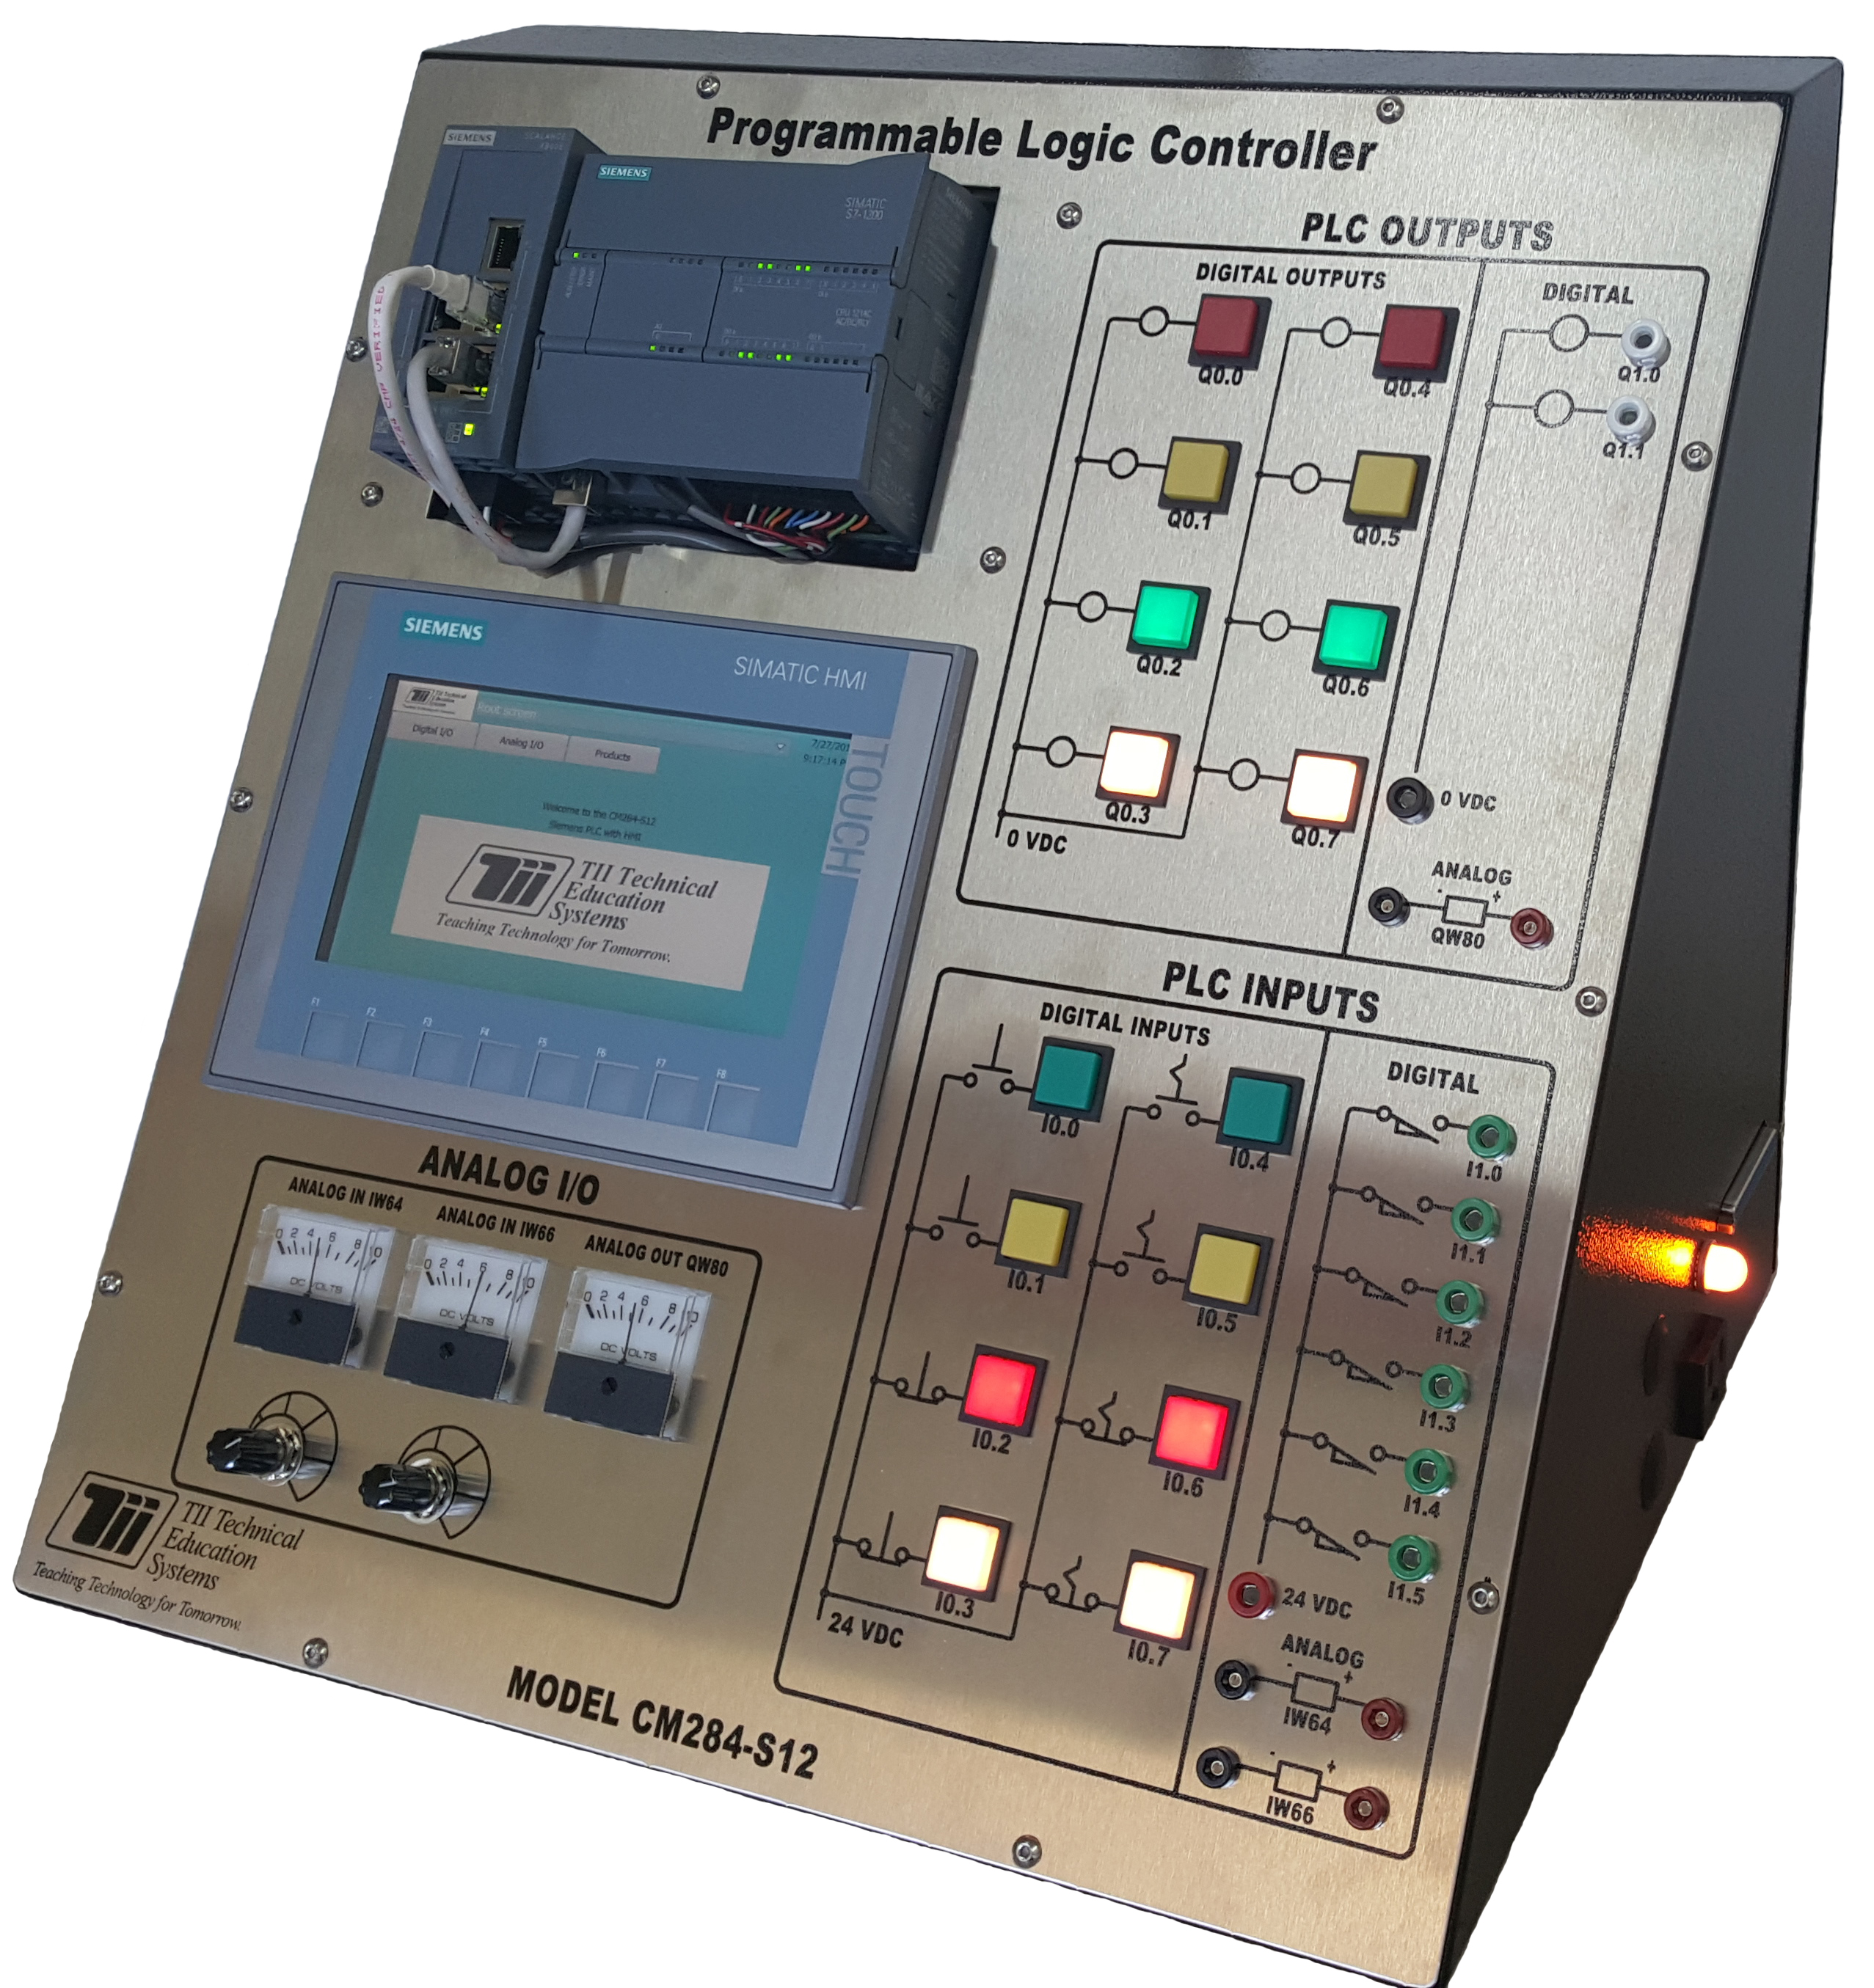 PLC_Trainer_Model_CM_284-S12_Image.jpg